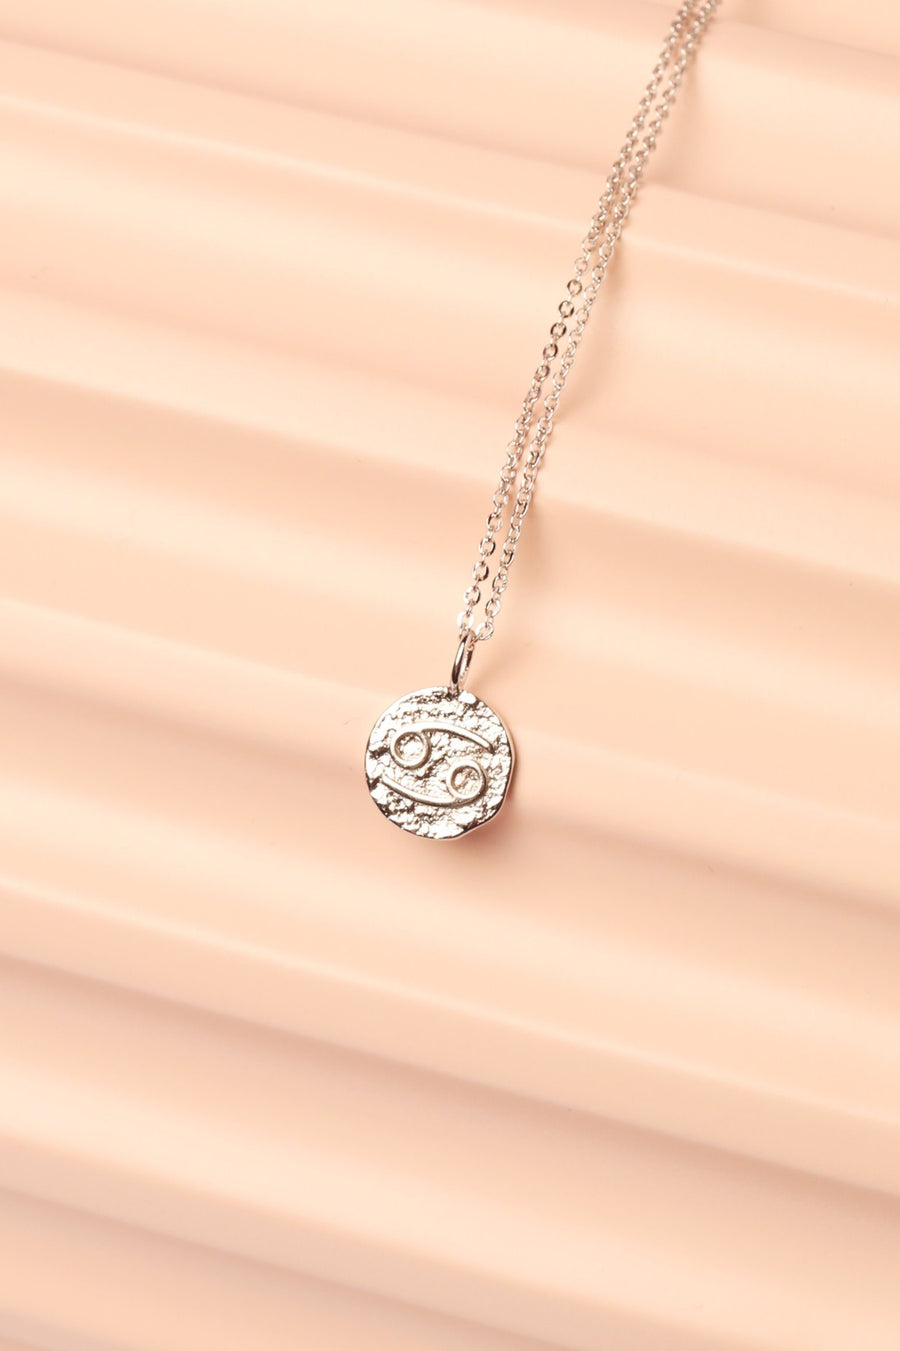 Silver Zodiac Charm Necklace Necklace Mulberry & Grand Cancer